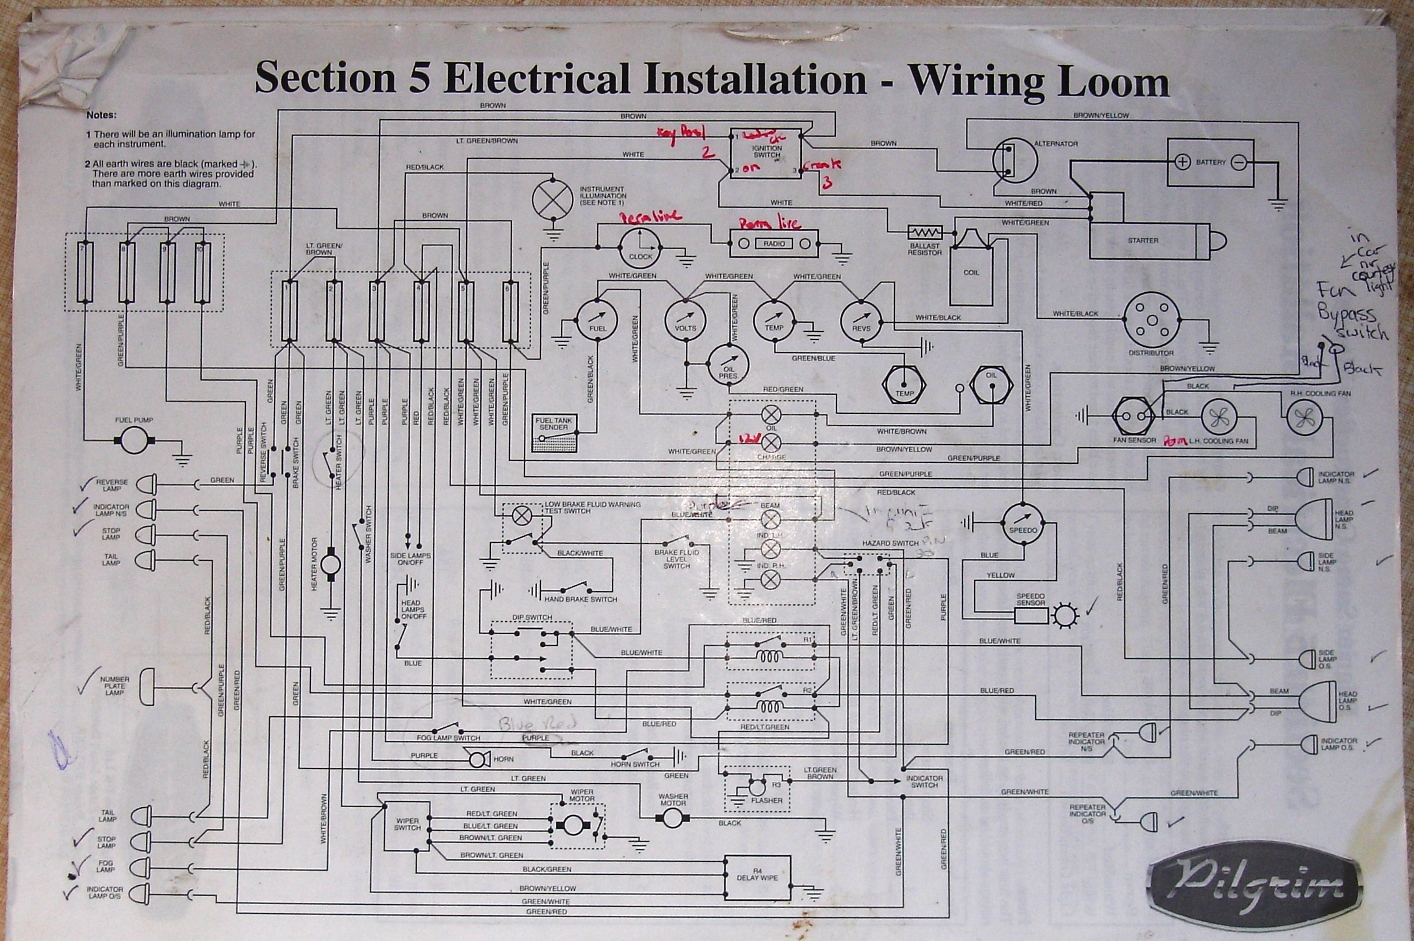 kit car wiring diagram kit image wiring diagram tiger kit car wiring diagram wiring diagrams on kit car wiring diagram